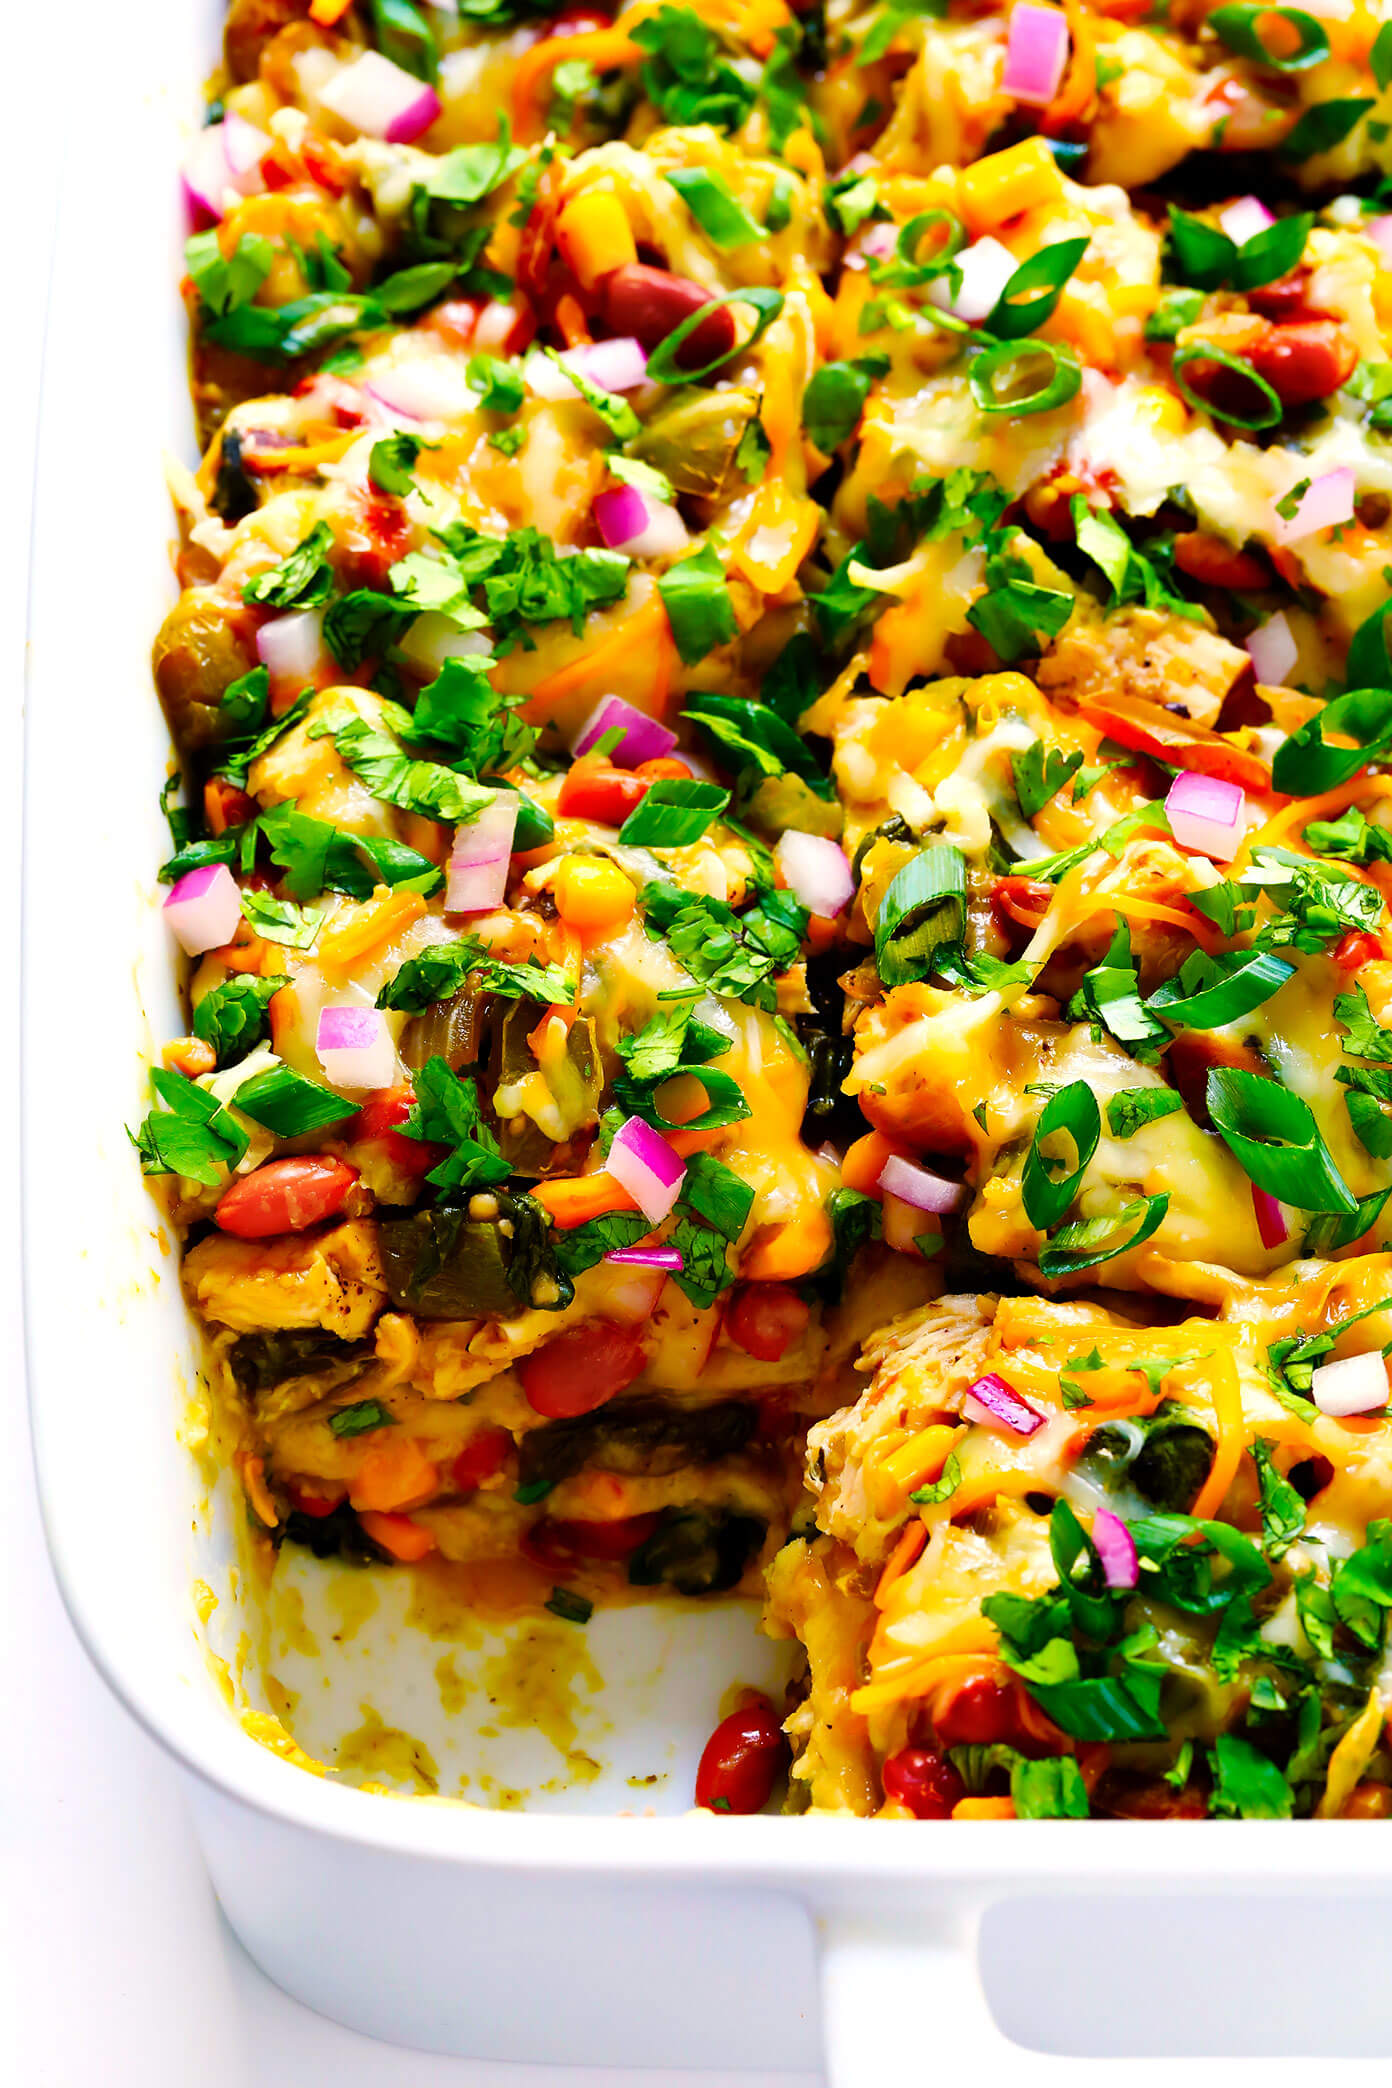 This Layered Chicken Enchilada Casserole Is a Must-Make